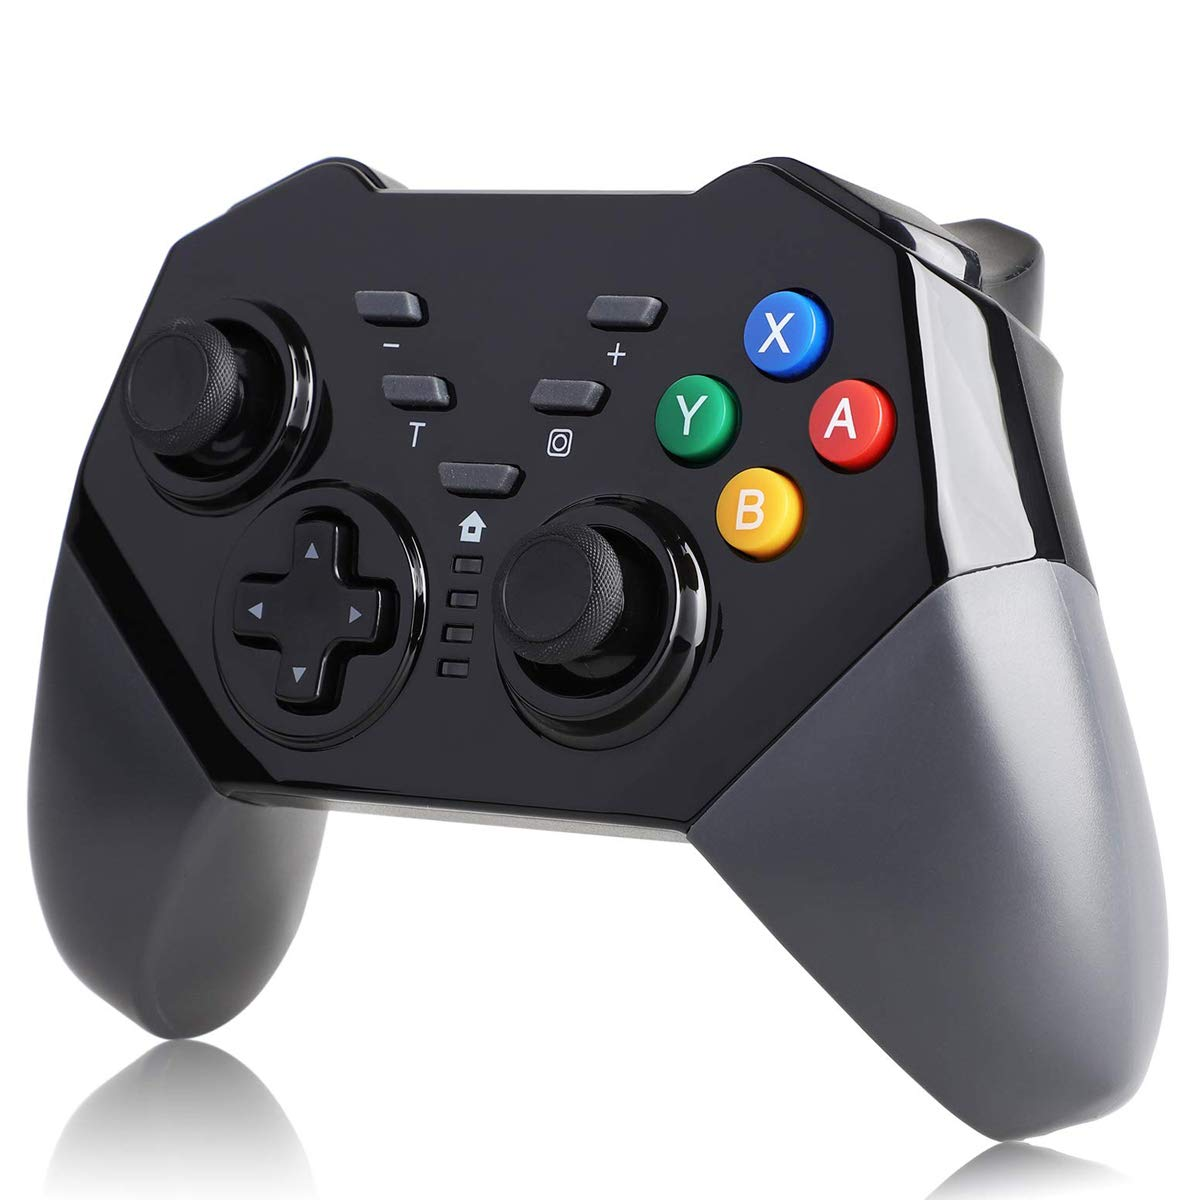 QULLOO Nintendo Switch Mando Controller Wireless Pro Controlador Inalámbrico Gamepad Bluetooth Controller Joypad Joystick con Turbo y Dual Shock Functions para Nintendo Switch: Amazon.es: Electrónica